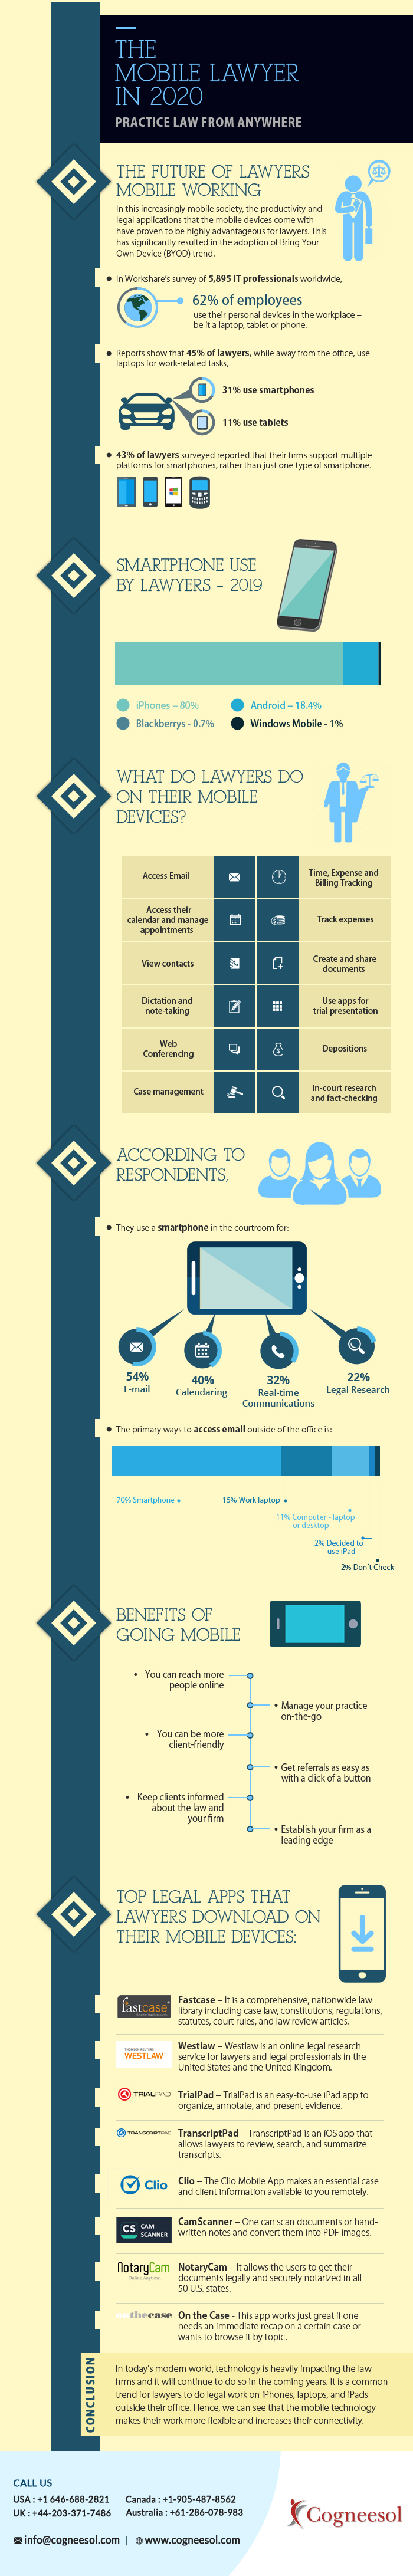 The Mobile Lawyer In 2020: Practice Law From Anywhere